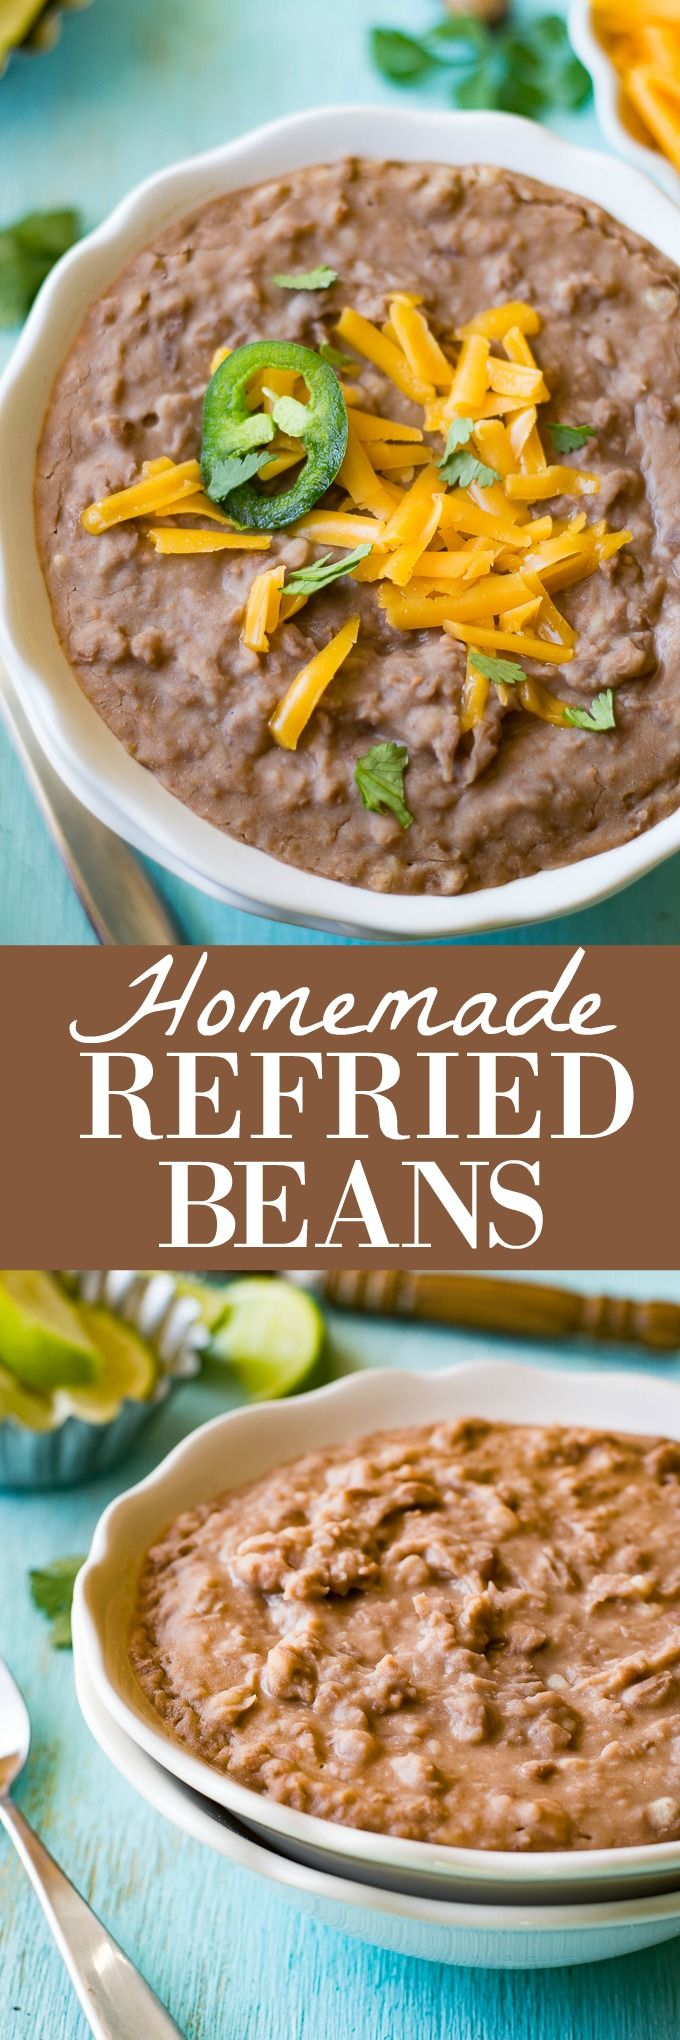 Homemade Refried Beans! Quick and easy! Only 2 ingredients. These are the perfect side dish to any mexican meal, or any meal. I'm so excited to share today's recipe with you! Homemade Refried Beans. These are so easy and so so flavorful. You will never want to eat the canned beans again!